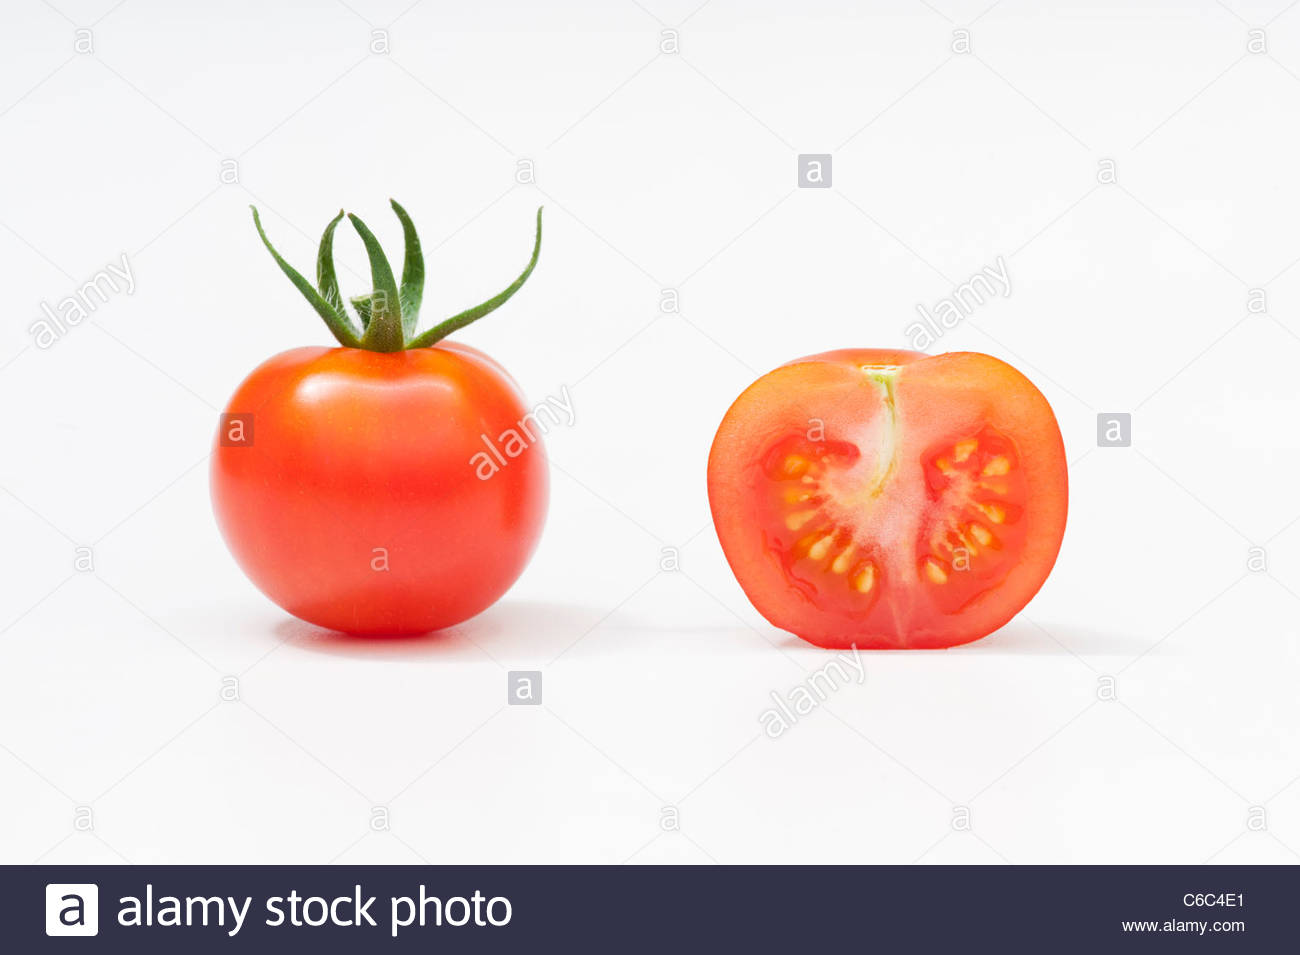 Whole And Cross Section Of A Tomato Showing Seeds On White